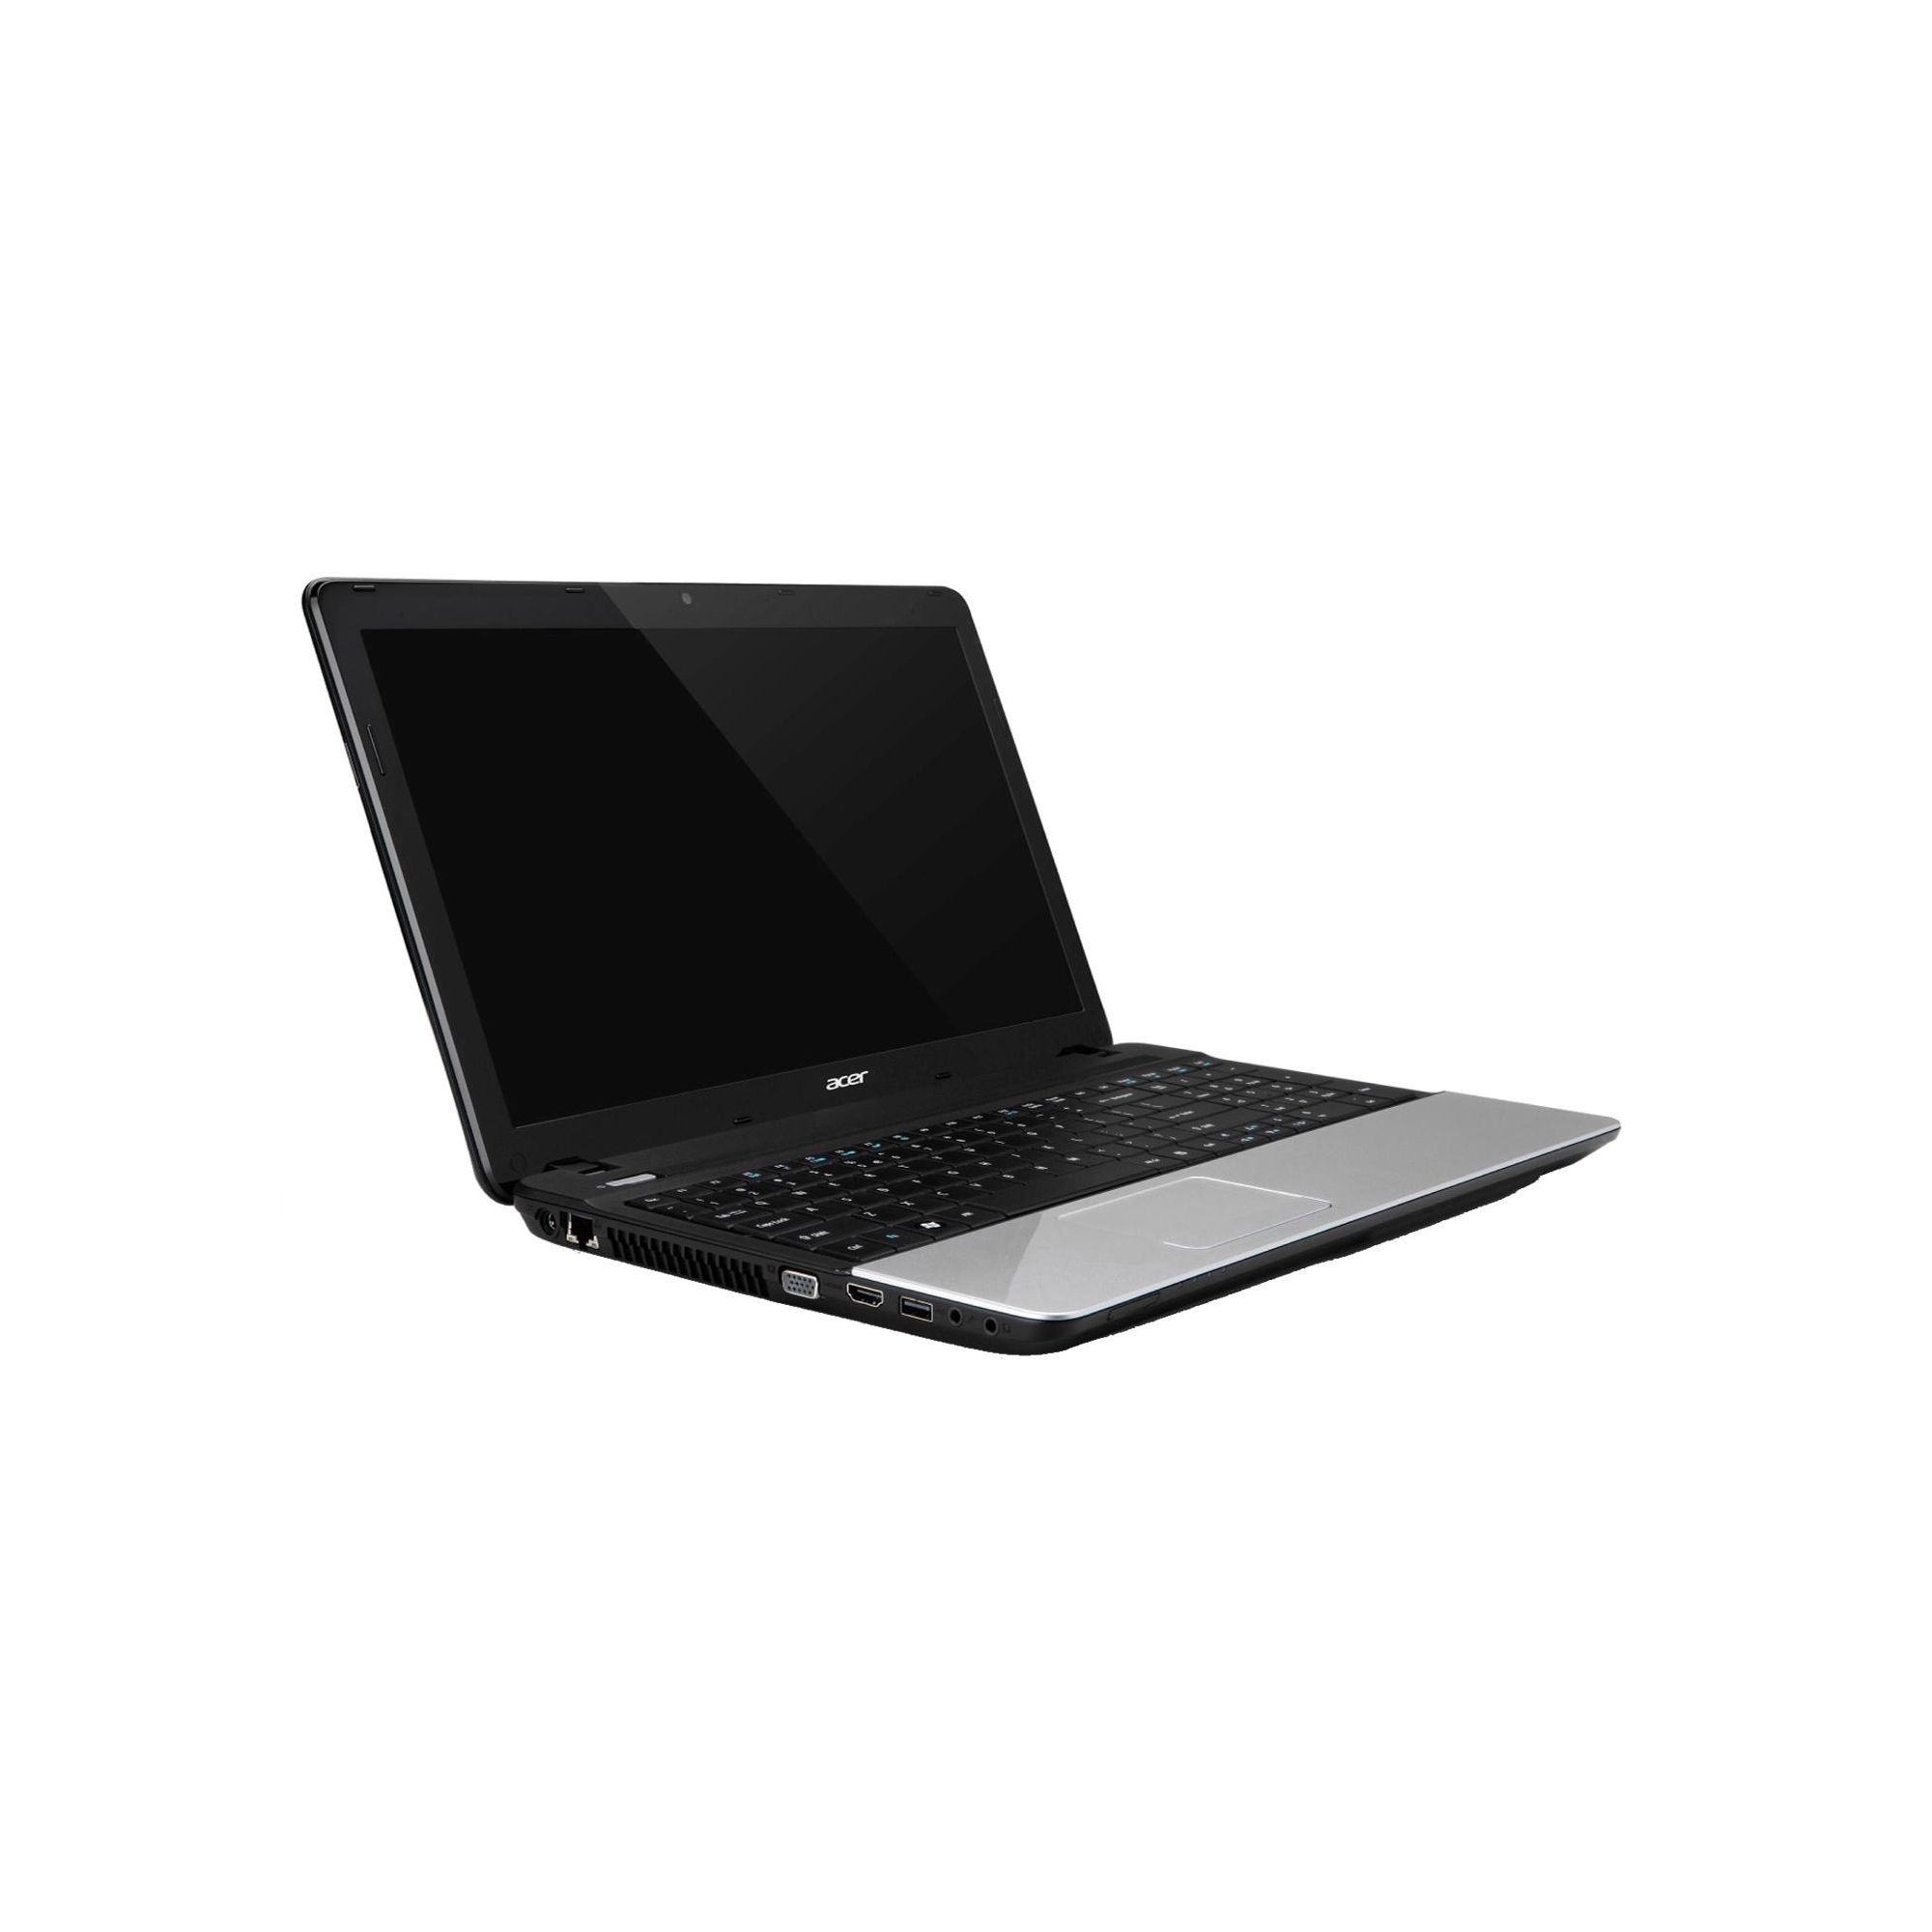 Acer Aspire E1-571-53218G75Mnks (15.6 inch) Notebook PC Core i5 (3210M) 2.5GHz 8GB 750GB DVD-SuperMulti DL WLAN Webcam Windows 8 64-bit (Intel GMA HD) at Tesco Direct